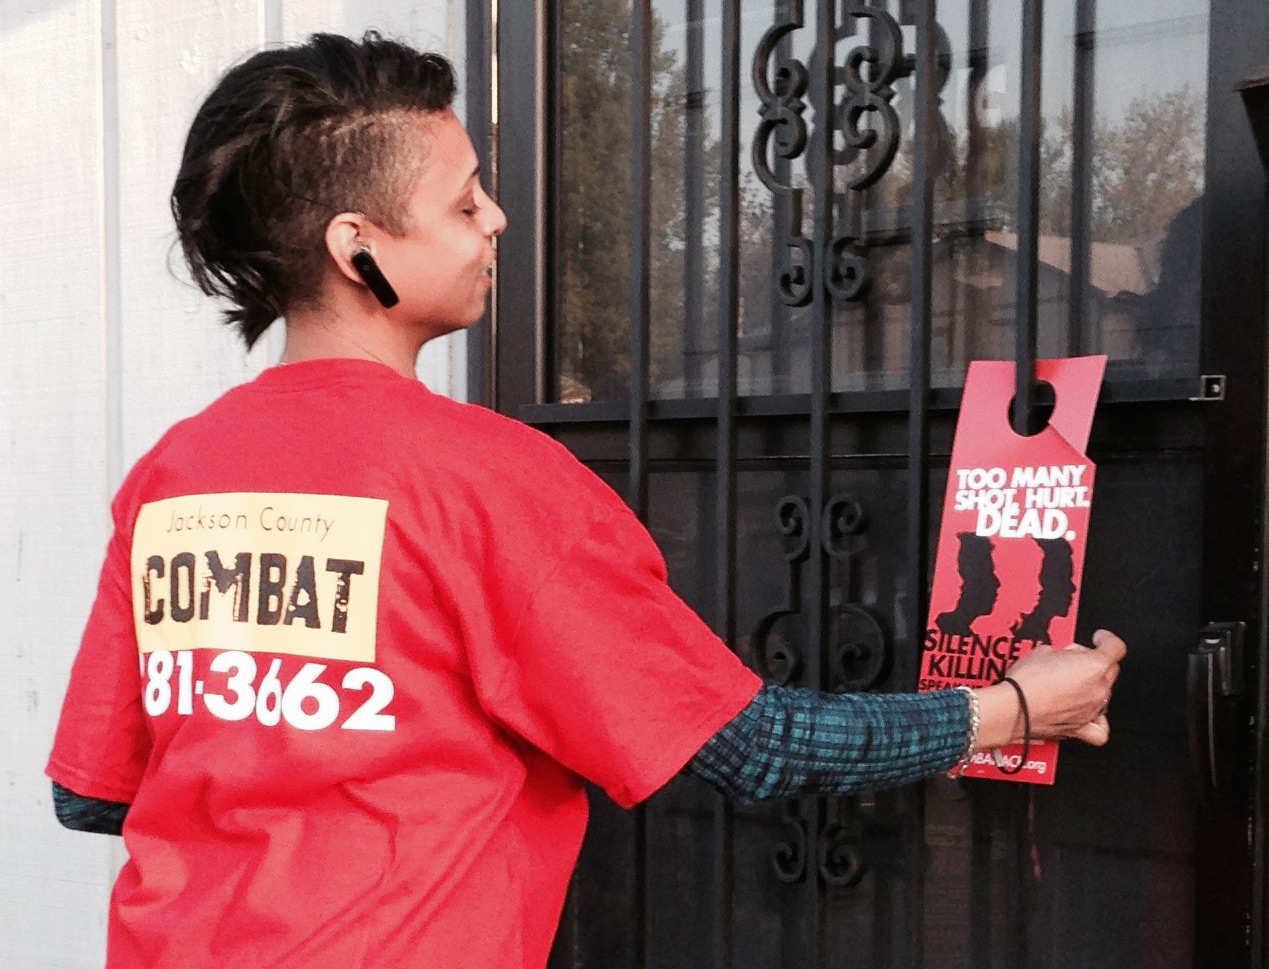 COMBAT volunteers places door hanger that highlights crime hotline phone number